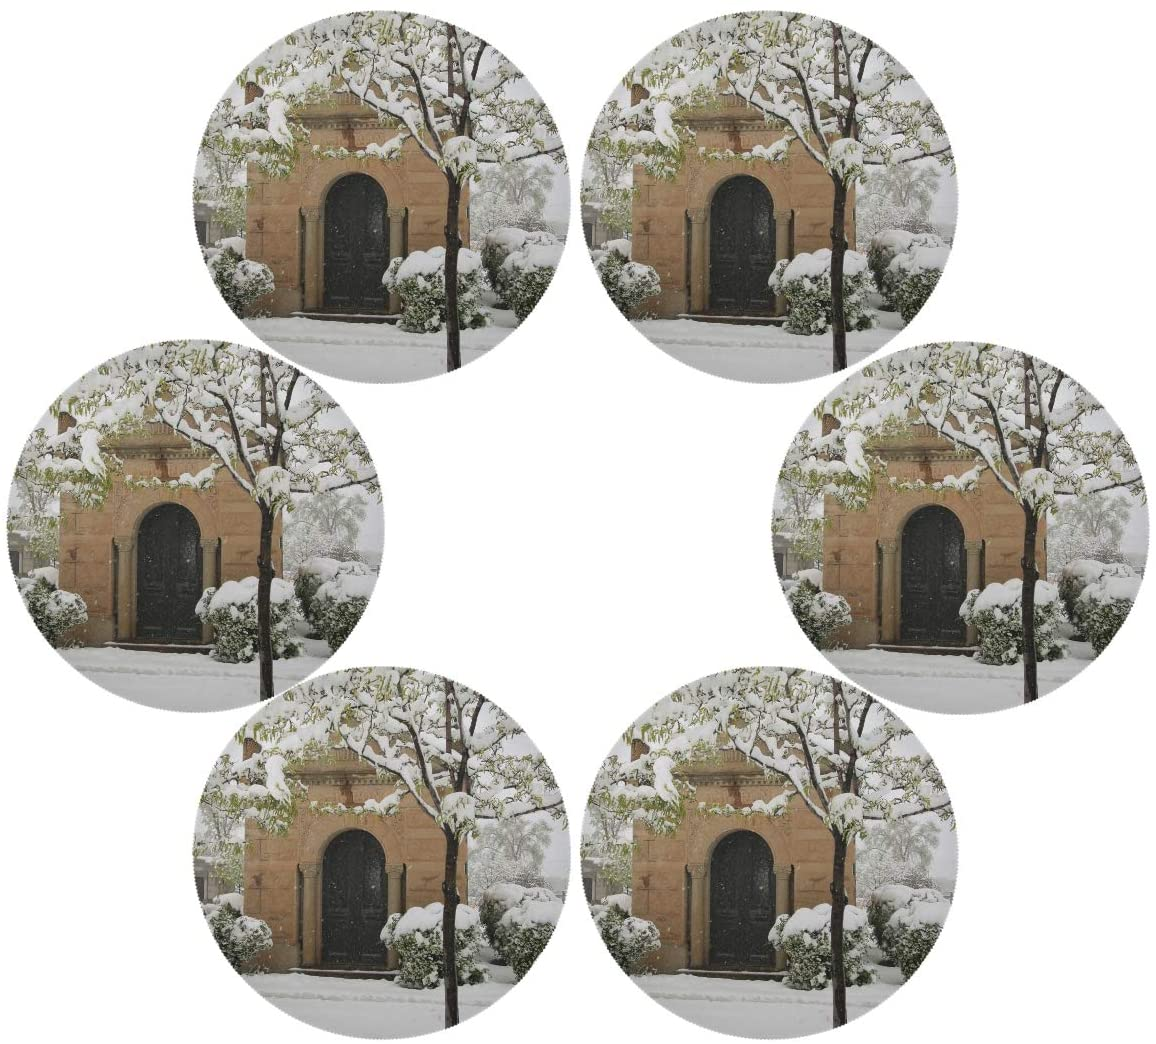 senya Winter Landscape(2) Round Place mats for Kitchen Dining Table Runner Heat Insulation Non-Slip Washable Fall Placemats Set of 6